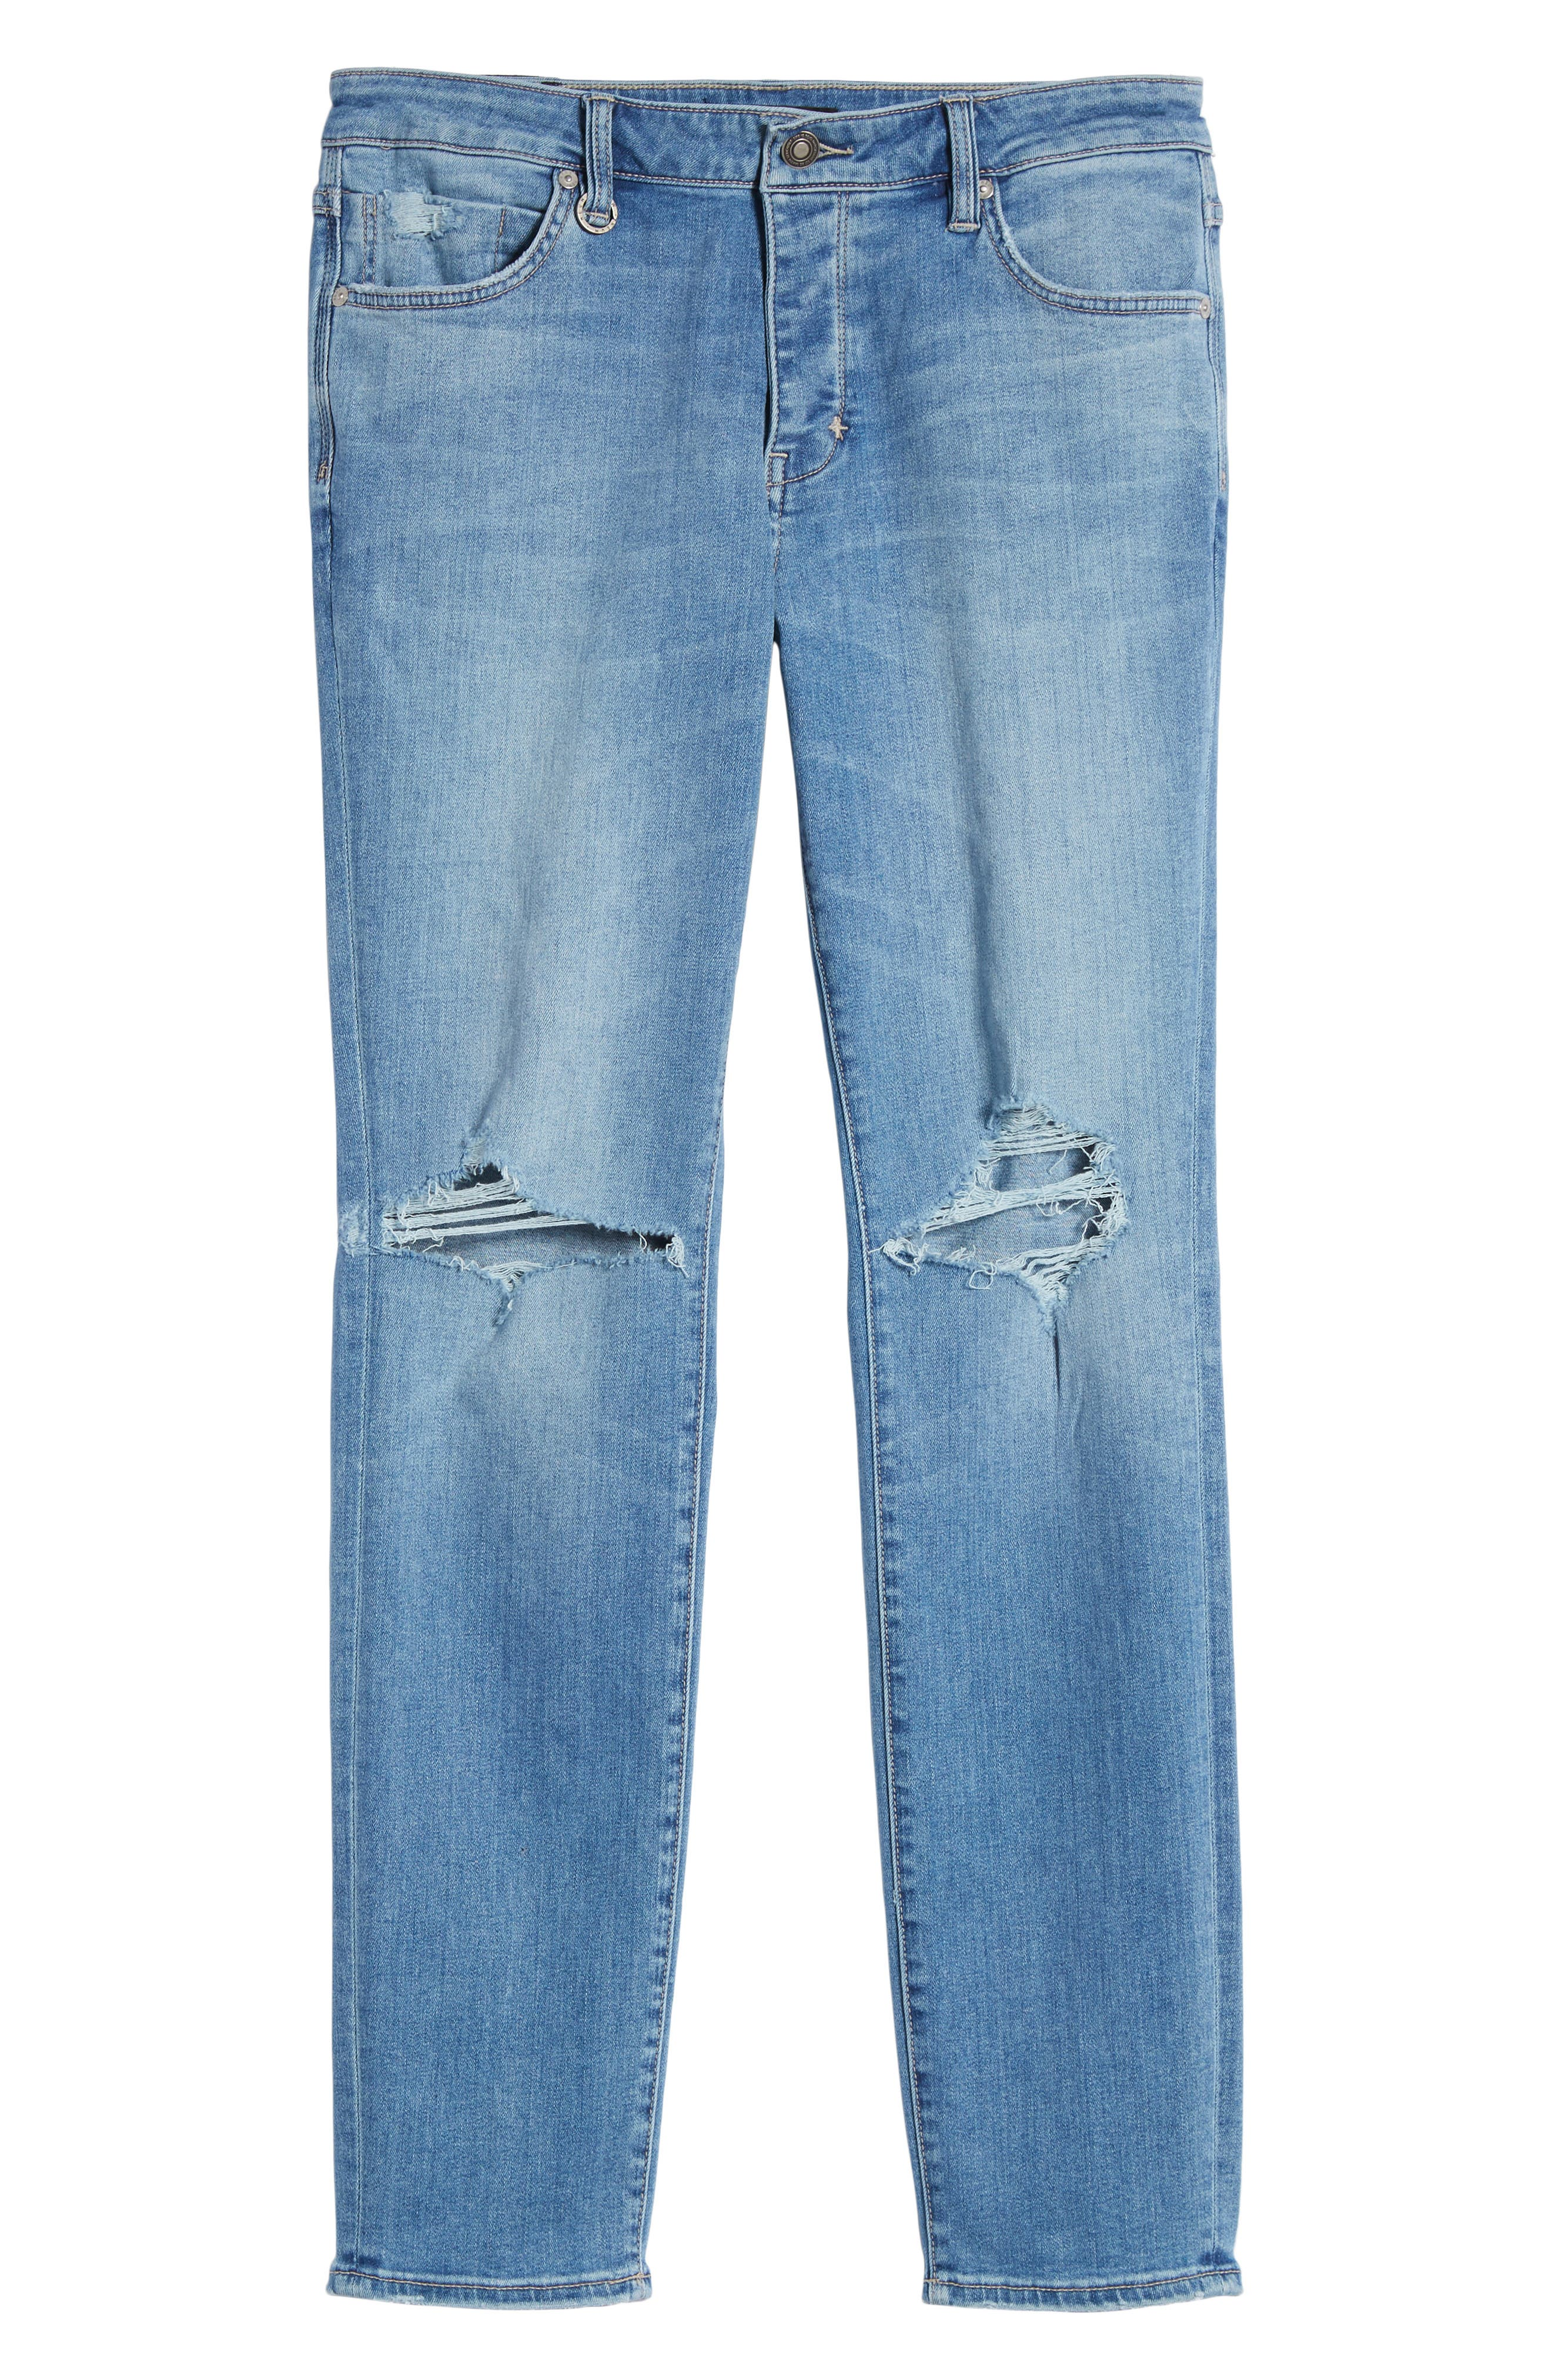 Iggy Skinny Fit Jeans,                             Alternate thumbnail 6, color,                             405